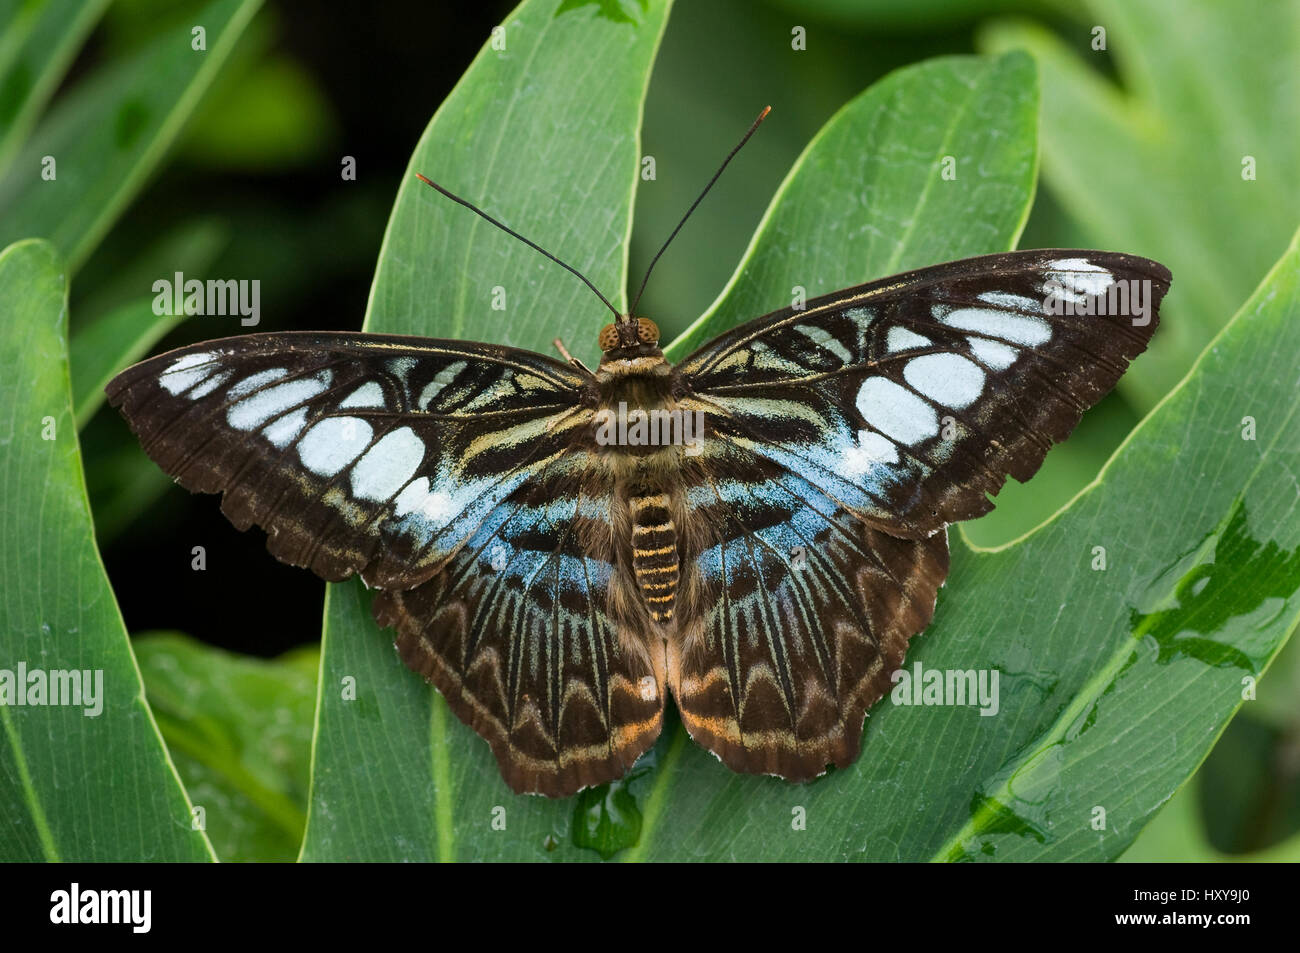 Clipper butterfly (Parthenos sylvia) wings open, at rest on leaf. - Stock Image